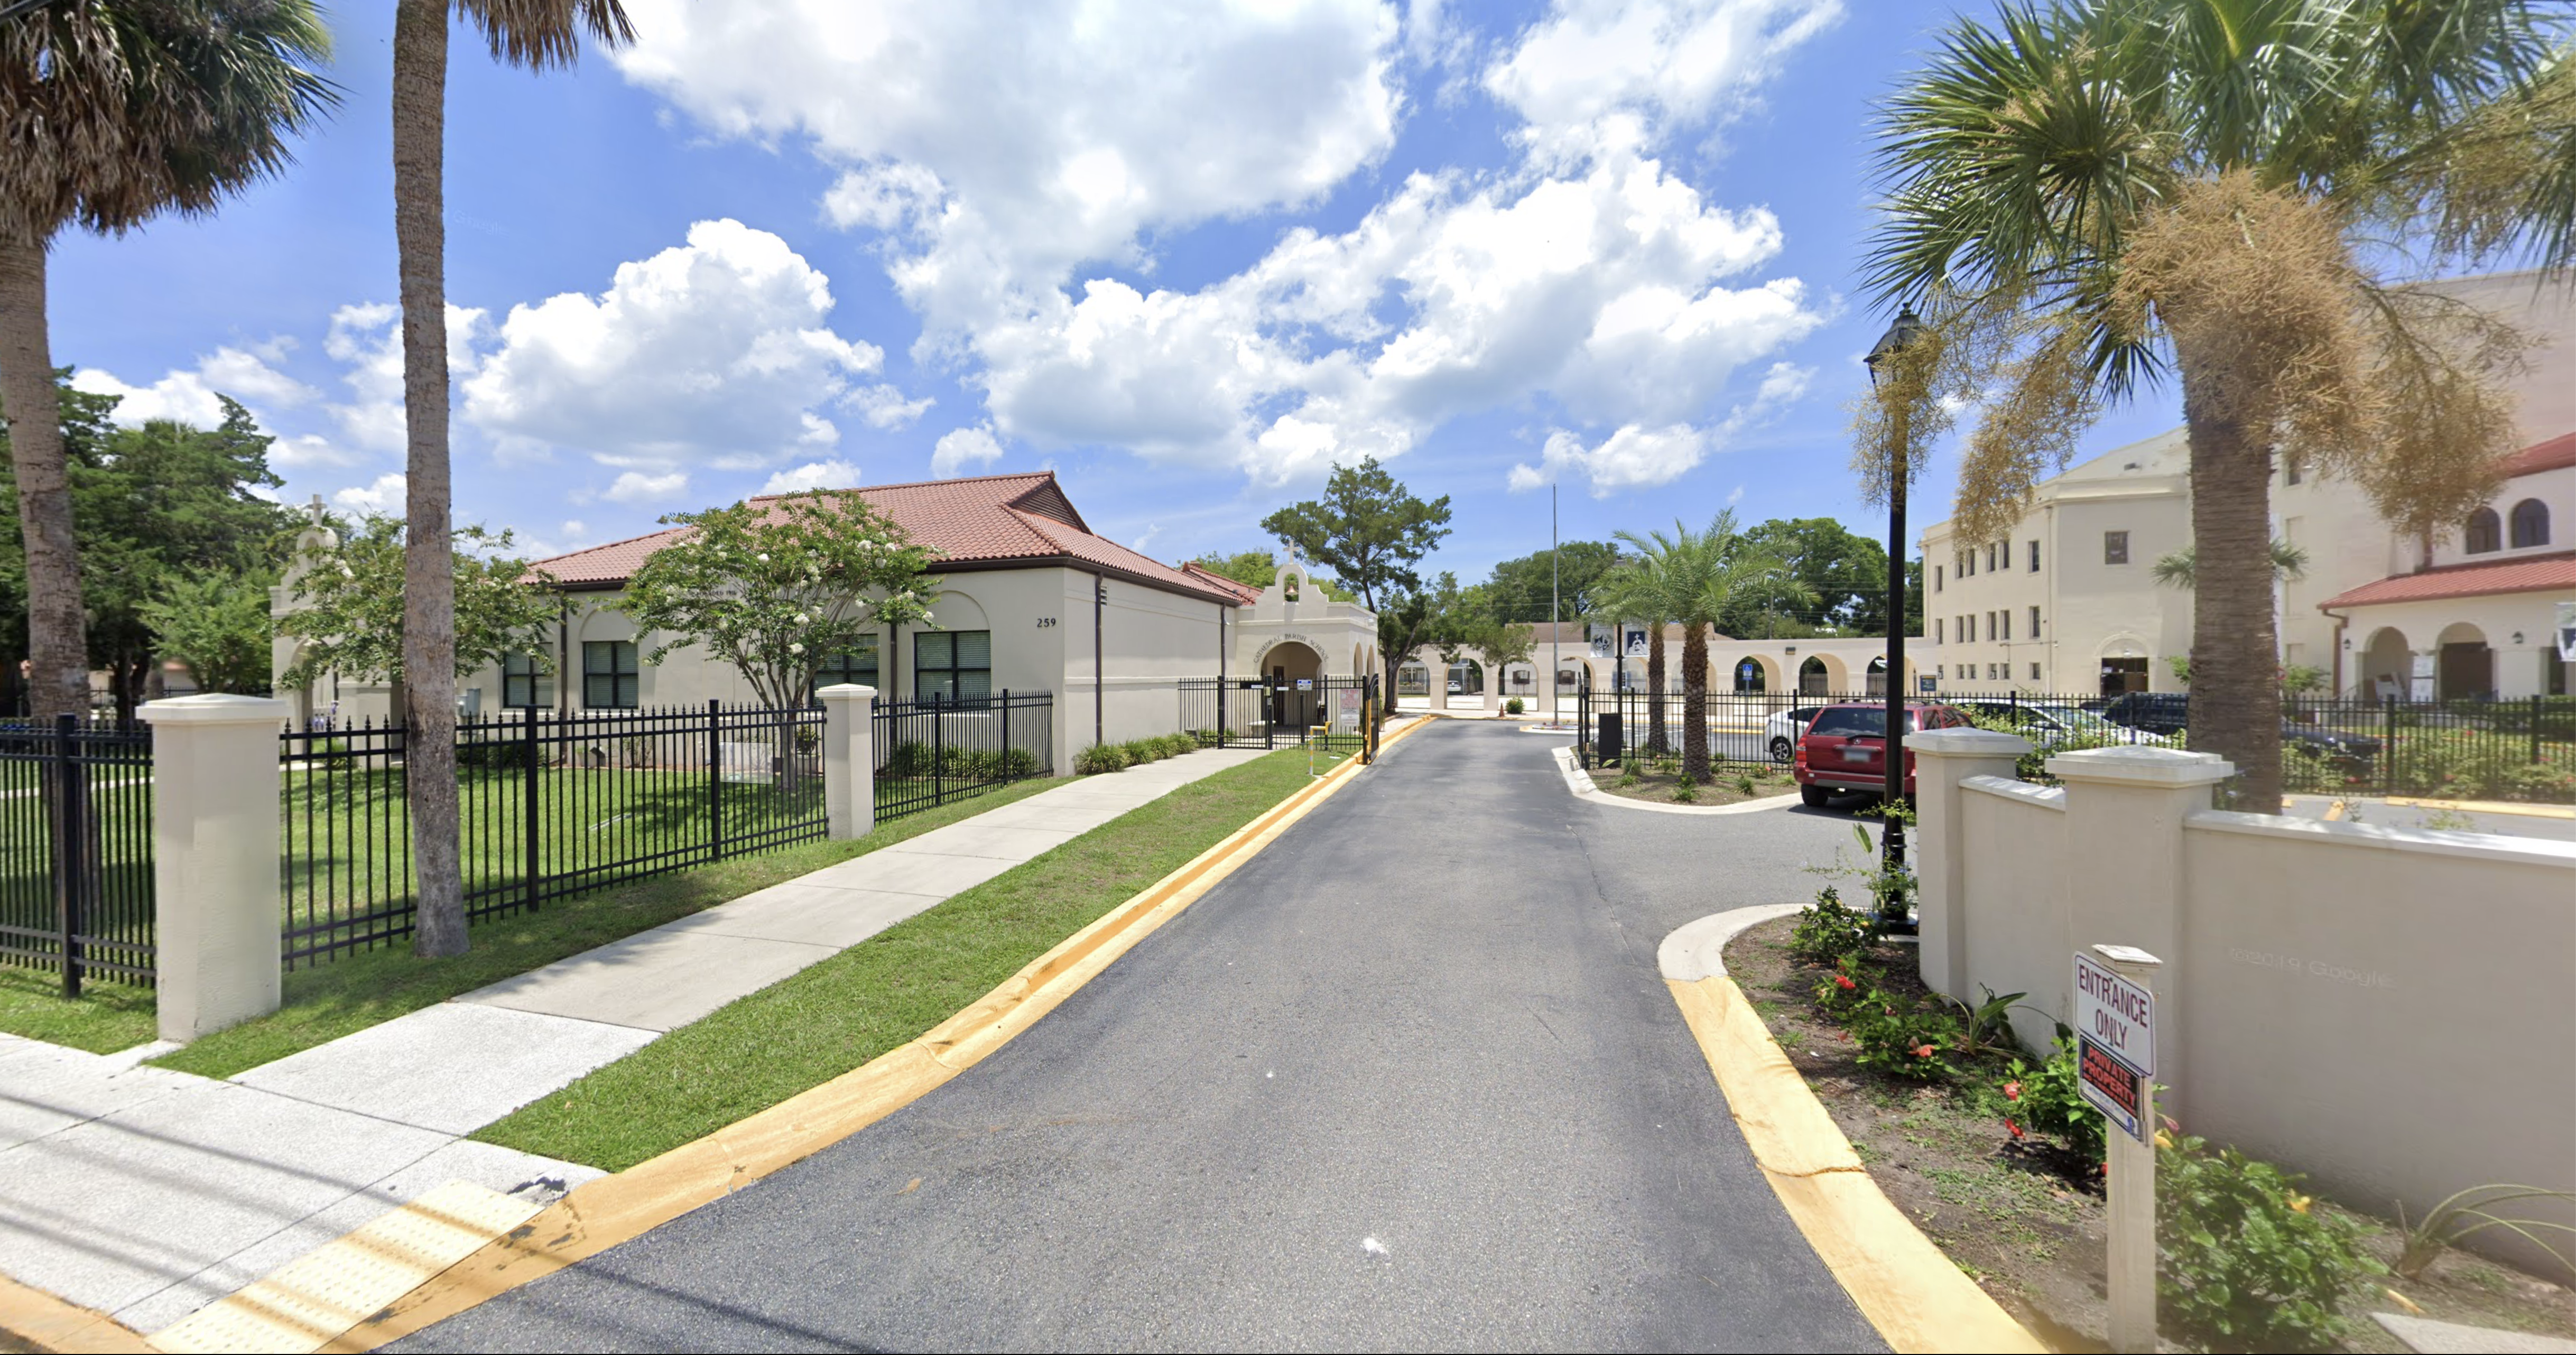 Driveway into the entrance of the Cathedral Parish School on a sunny day with palm trees and a tan, red roofed structures in the background